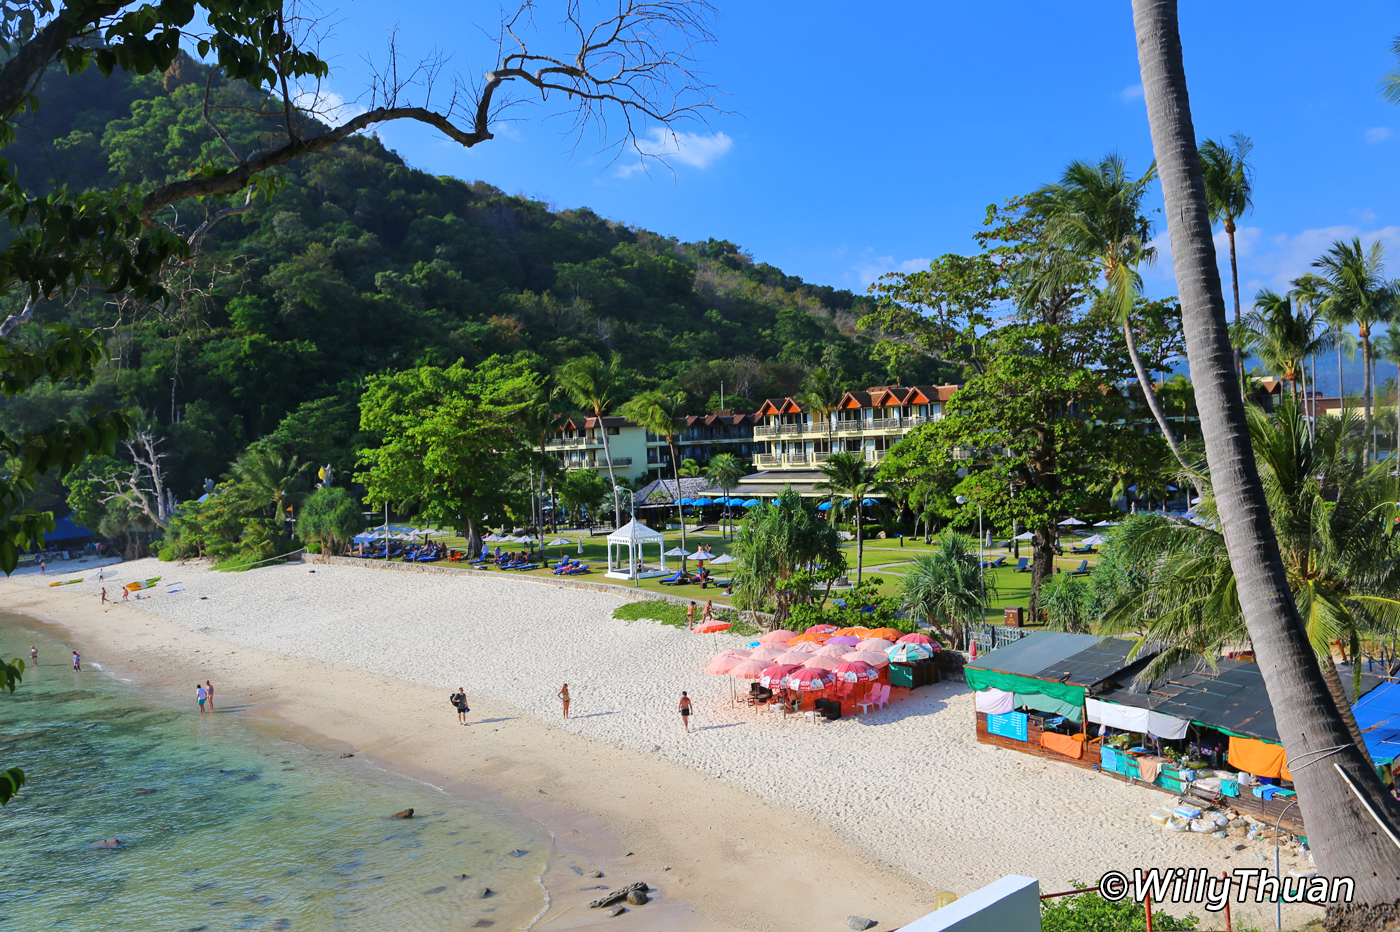 phuket beach resort Karon is one of the most famous areas in phuket, known as a family-friendly town and beach kanita resort & camping is for nature lovers that likes tranquility and.